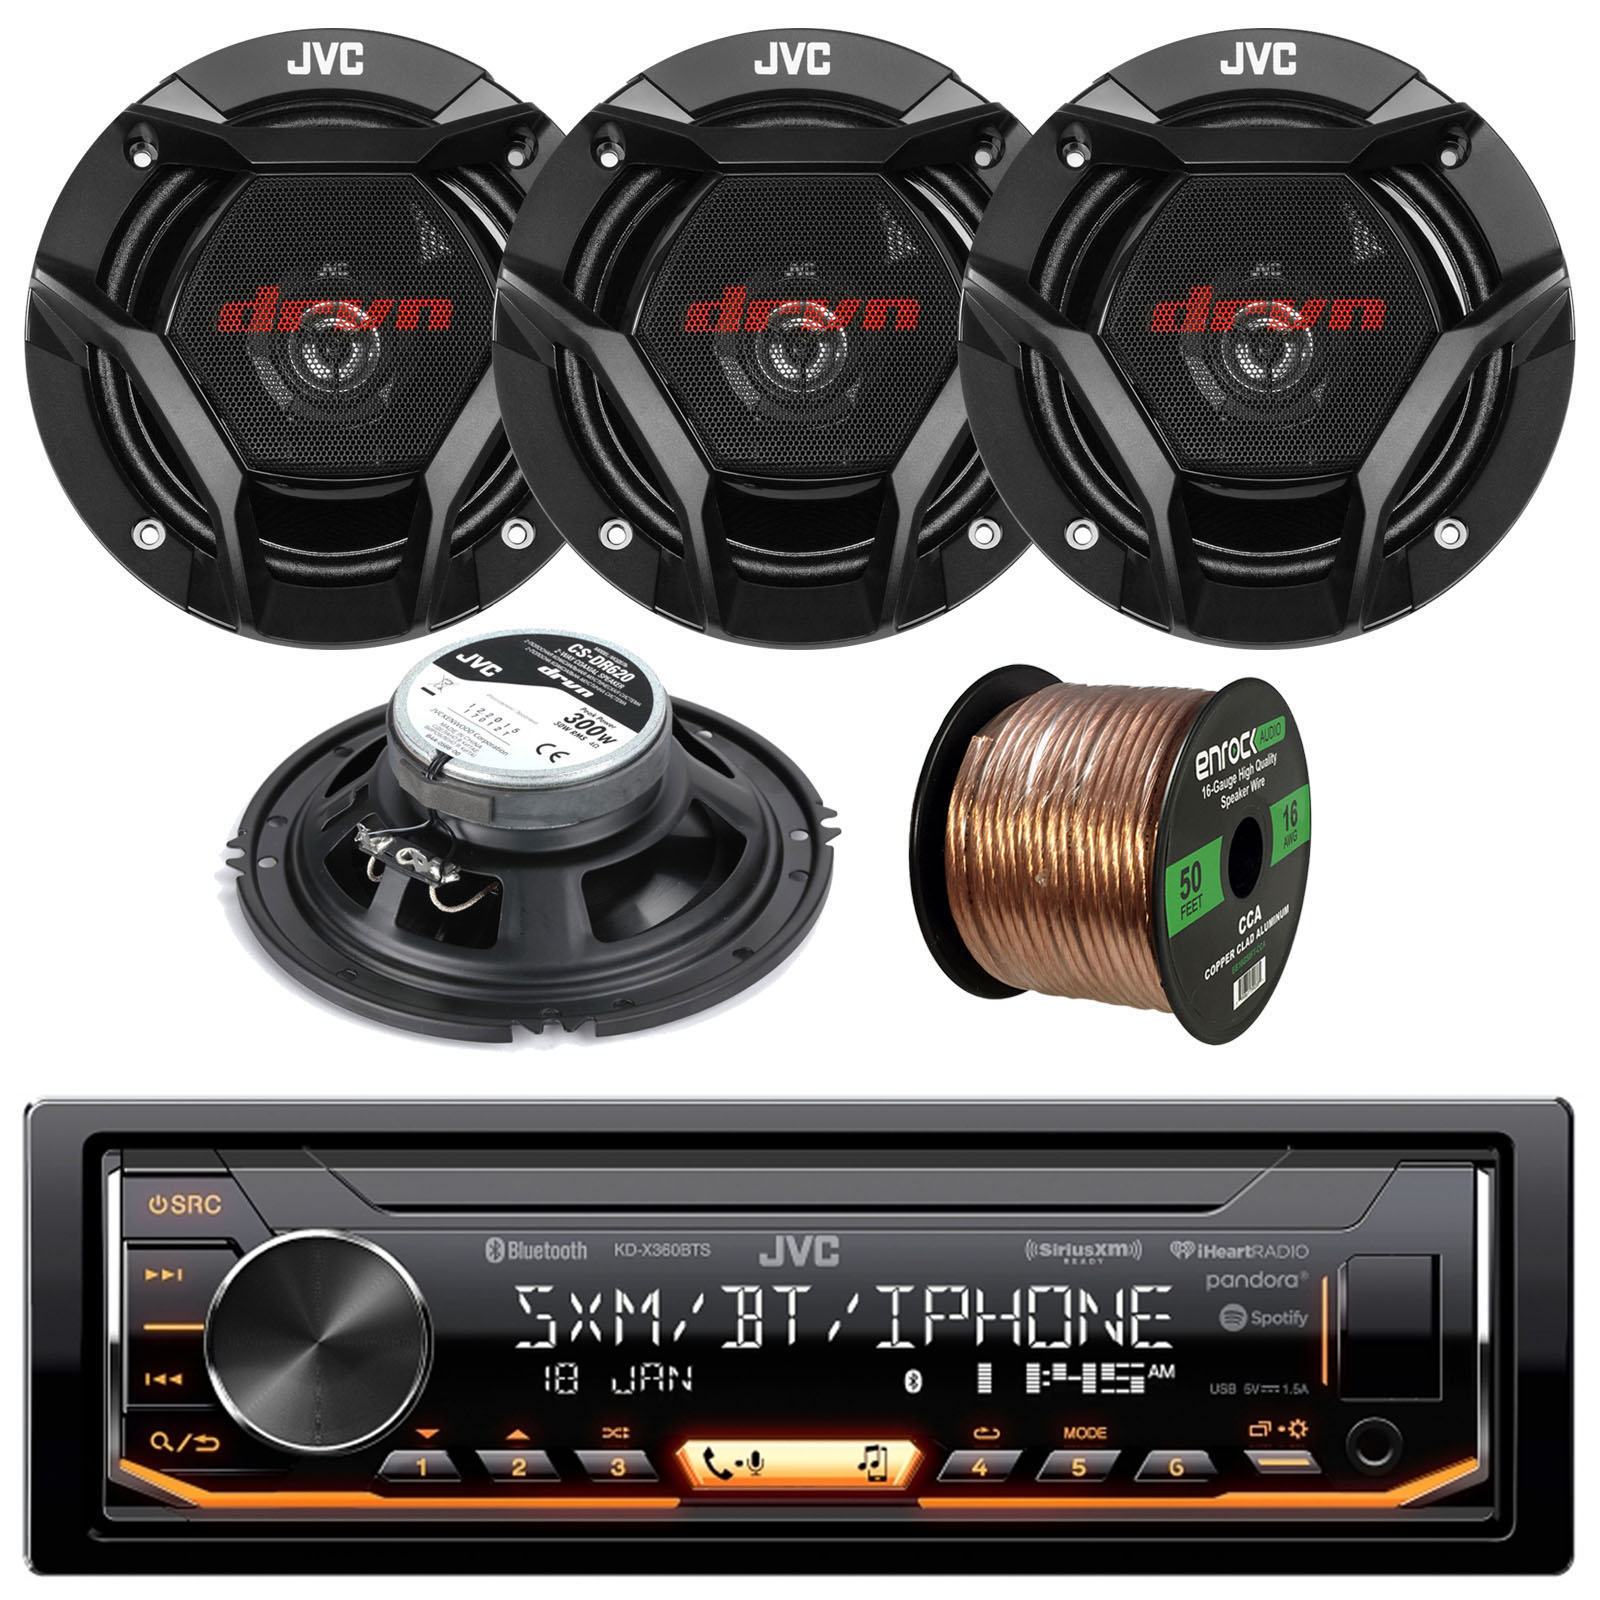 "JVC KDX360BTS Single-DIN AM/FM USB AUX Car Stereo Receiver Bundle Combo With 4x CS-DR620 DR Sereis 6.5"" Inch 300 Watt 2-Way Upgarde Audio Stereo Coaxial Speakers + 50 Foot 16 Gauge Speaker Wire"